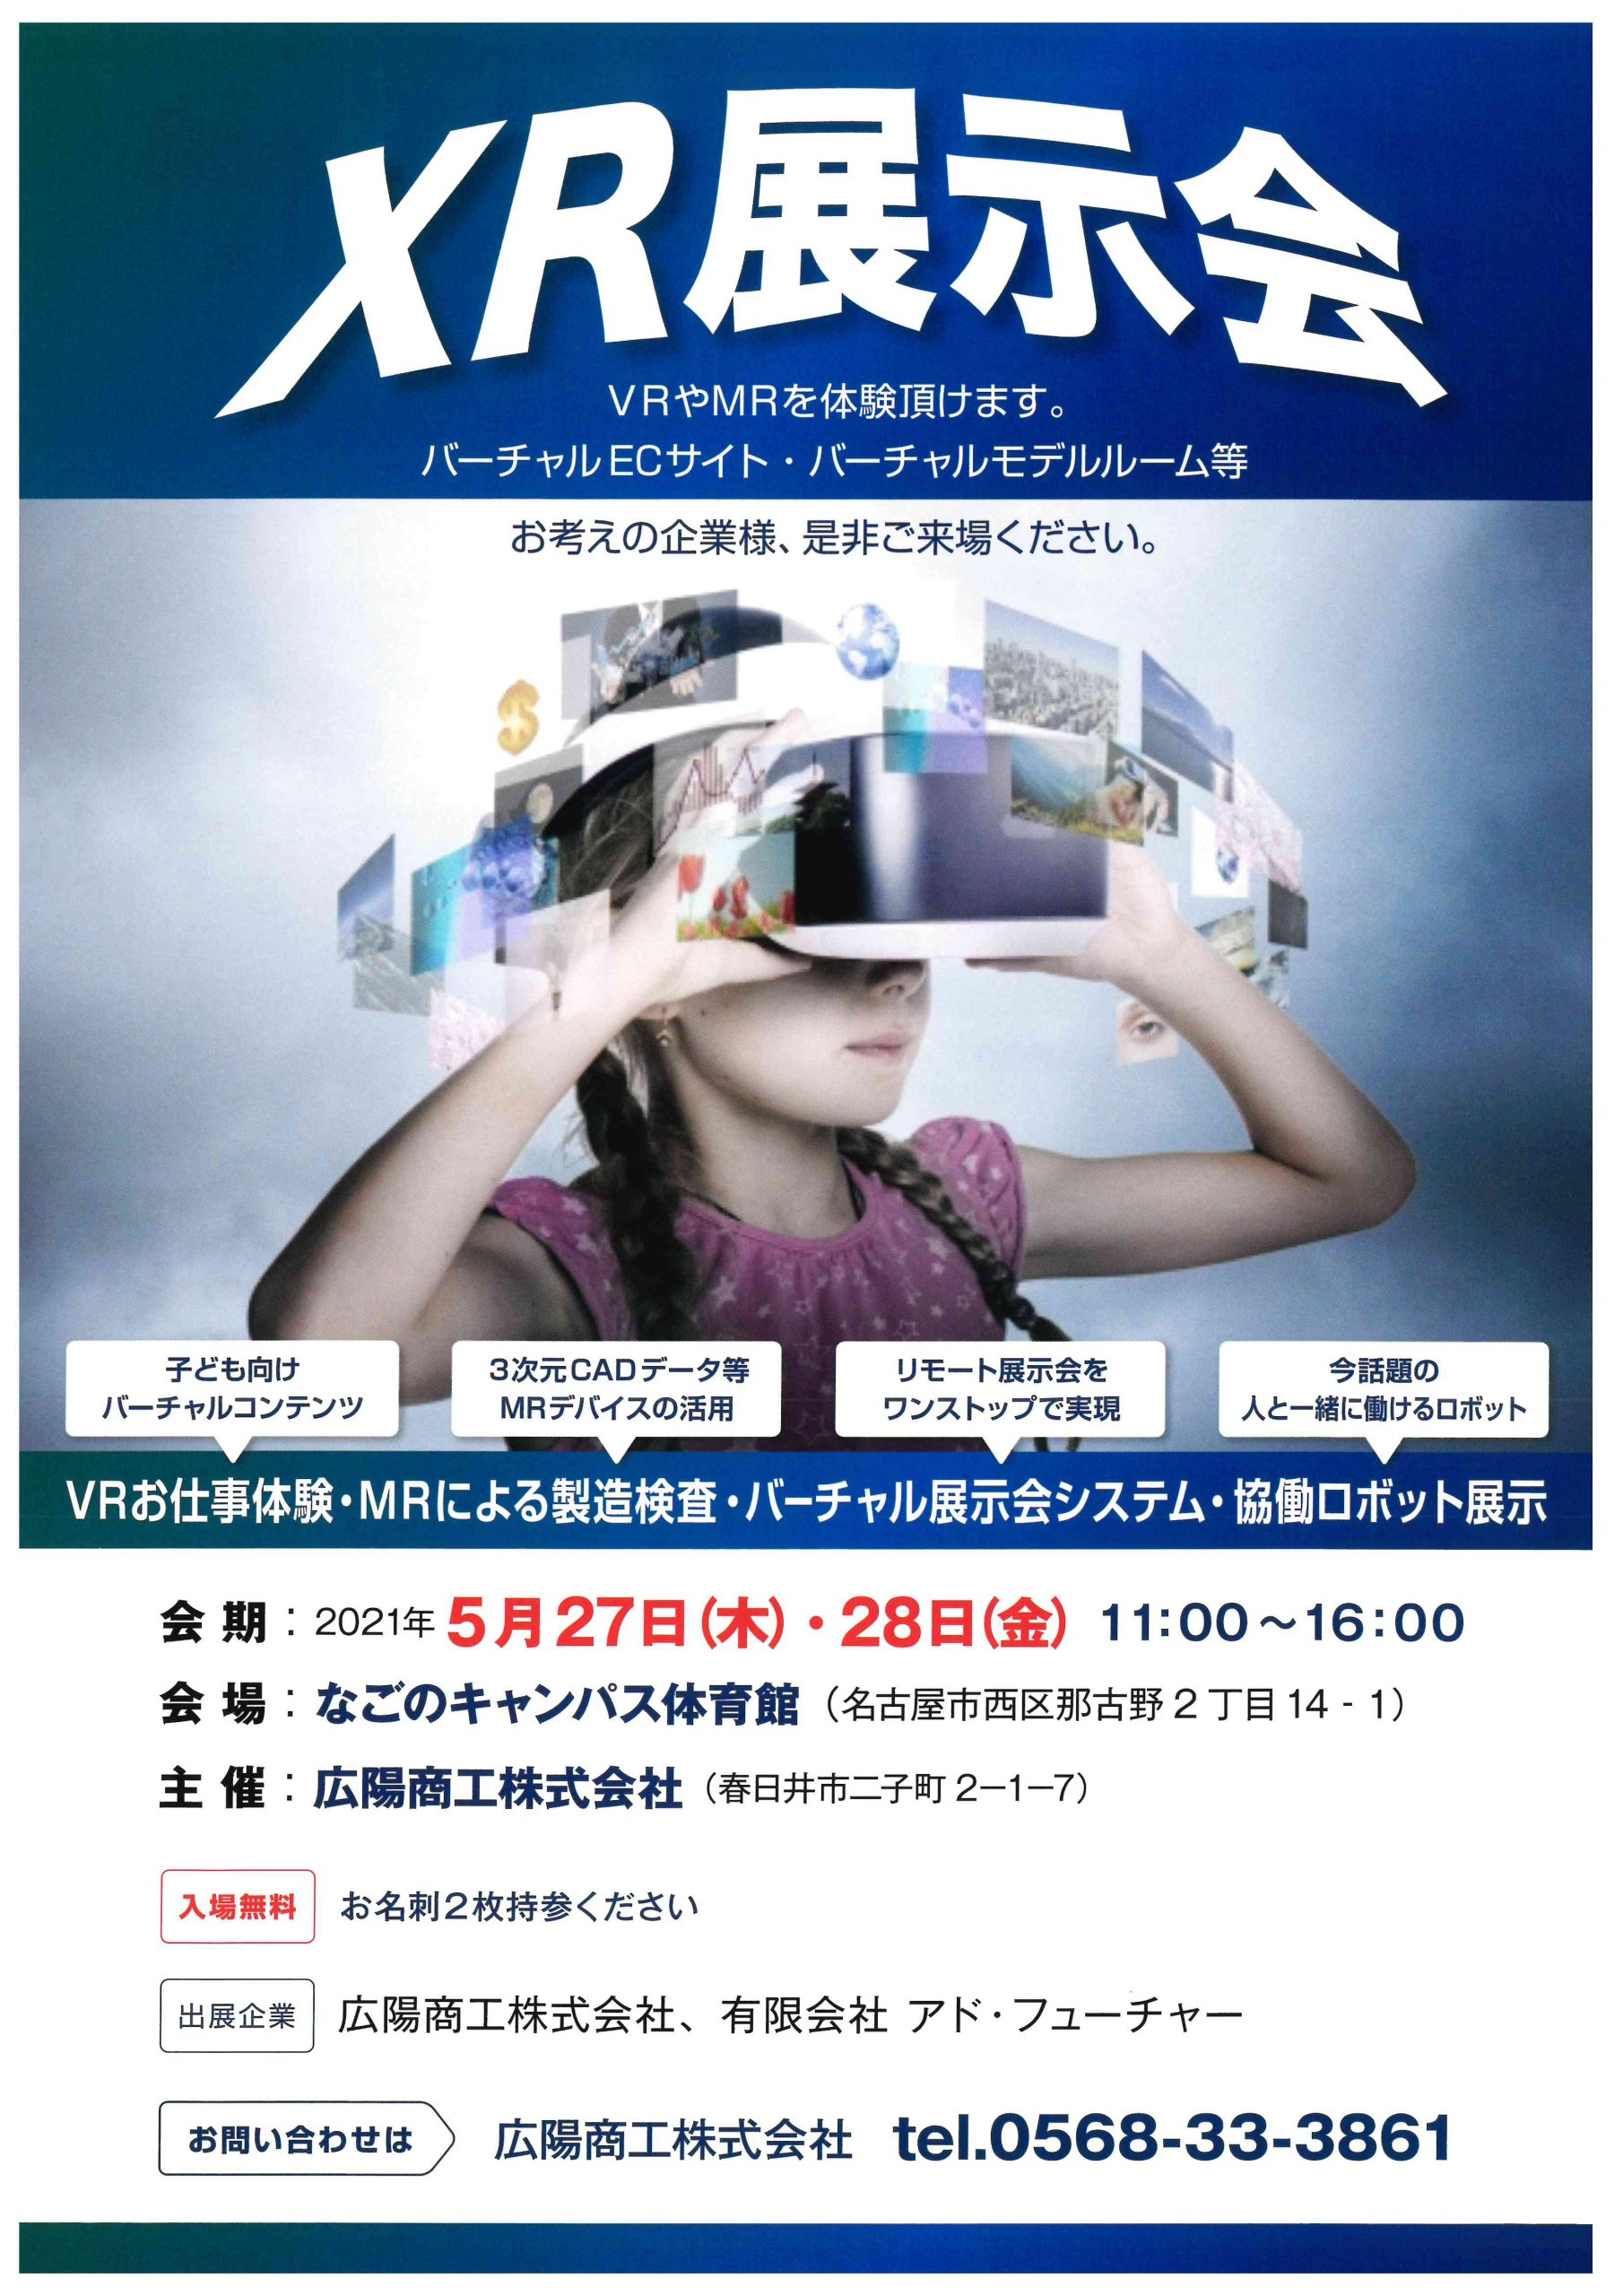 XR展示会のご案内